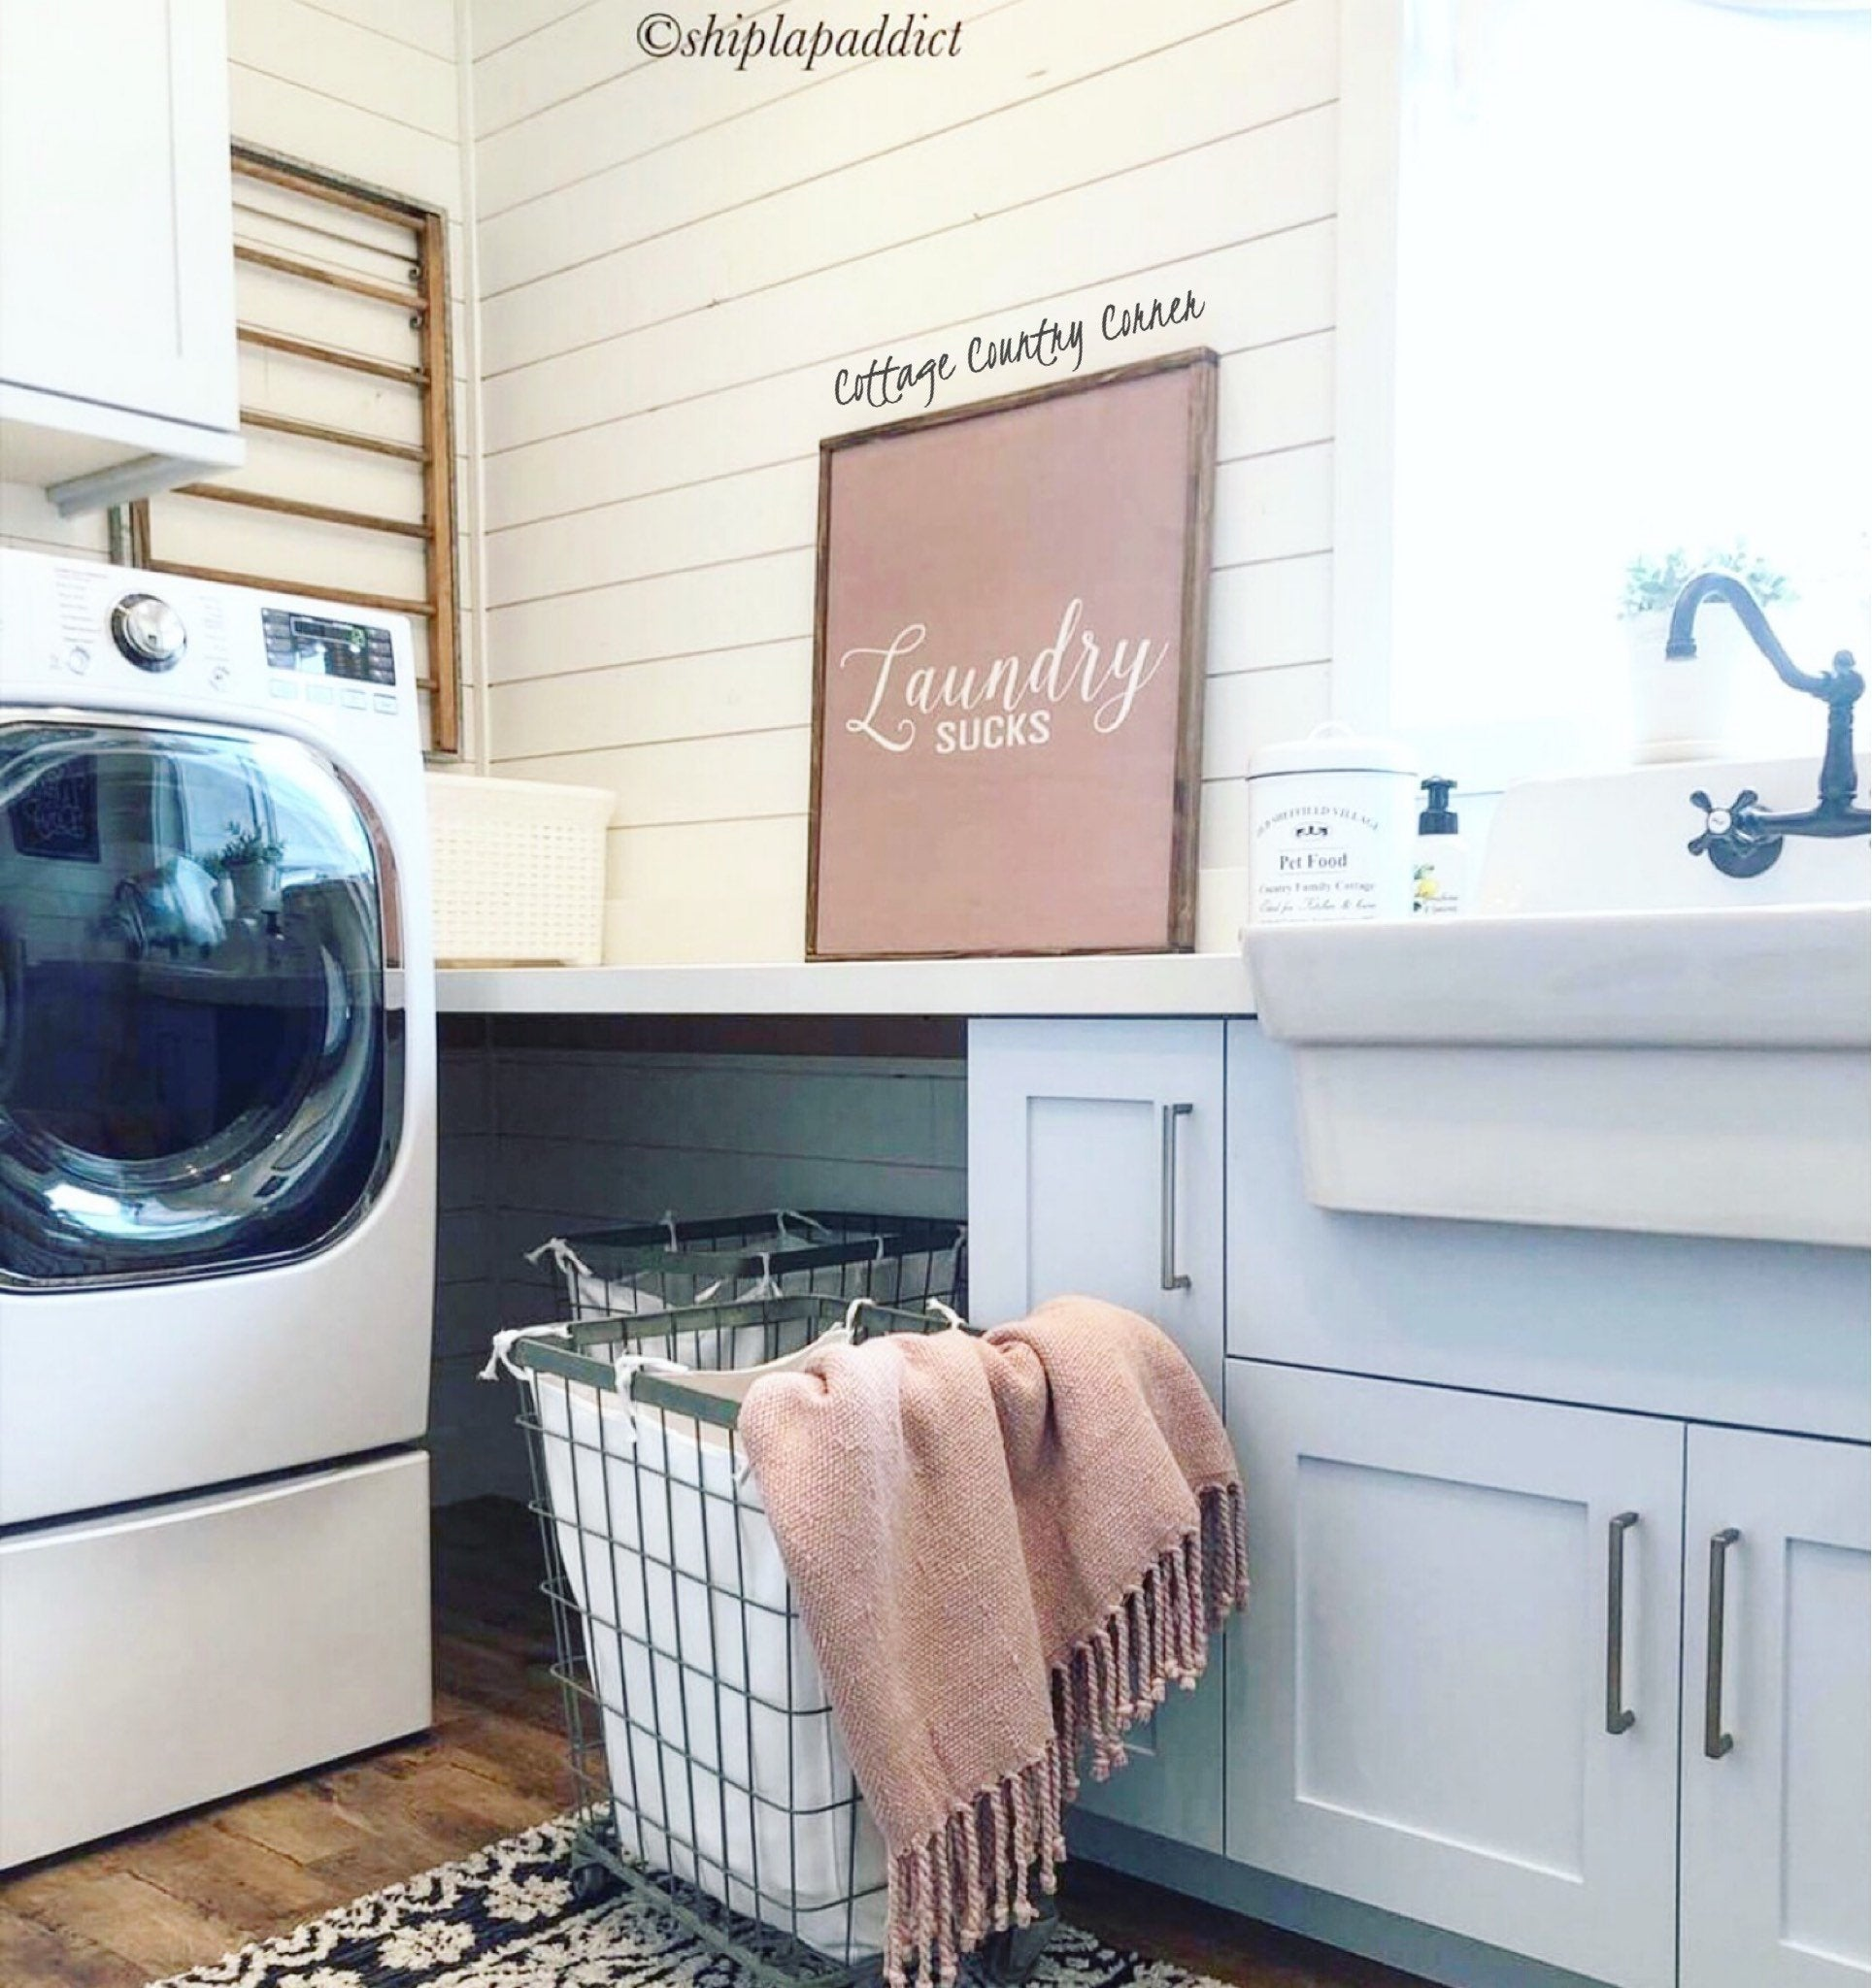 Laundry Sign 32x26 - Laundry Sucks Sign - Laundry Room Sign, Laundry Sign, Laundry Room Decor, Laundry Room Art, Farmhouse Style Sign